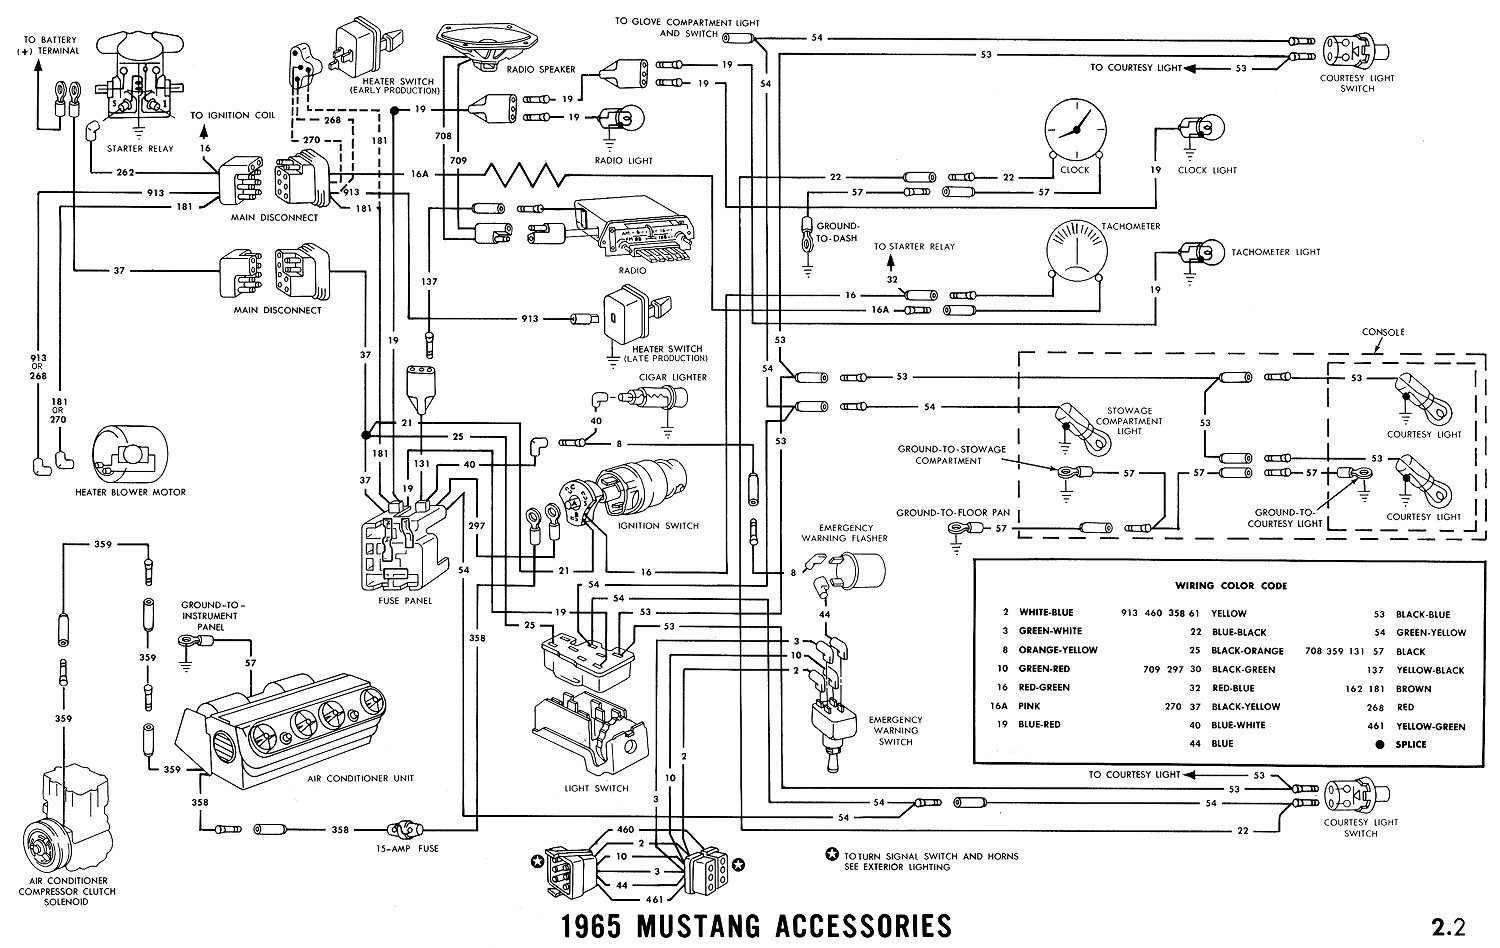 1990 mustang wiring diagram 1990 image wiring diagram 1990 mustang wiring diagram 1990 auto wiring diagram schematic on 1990 mustang wiring diagram